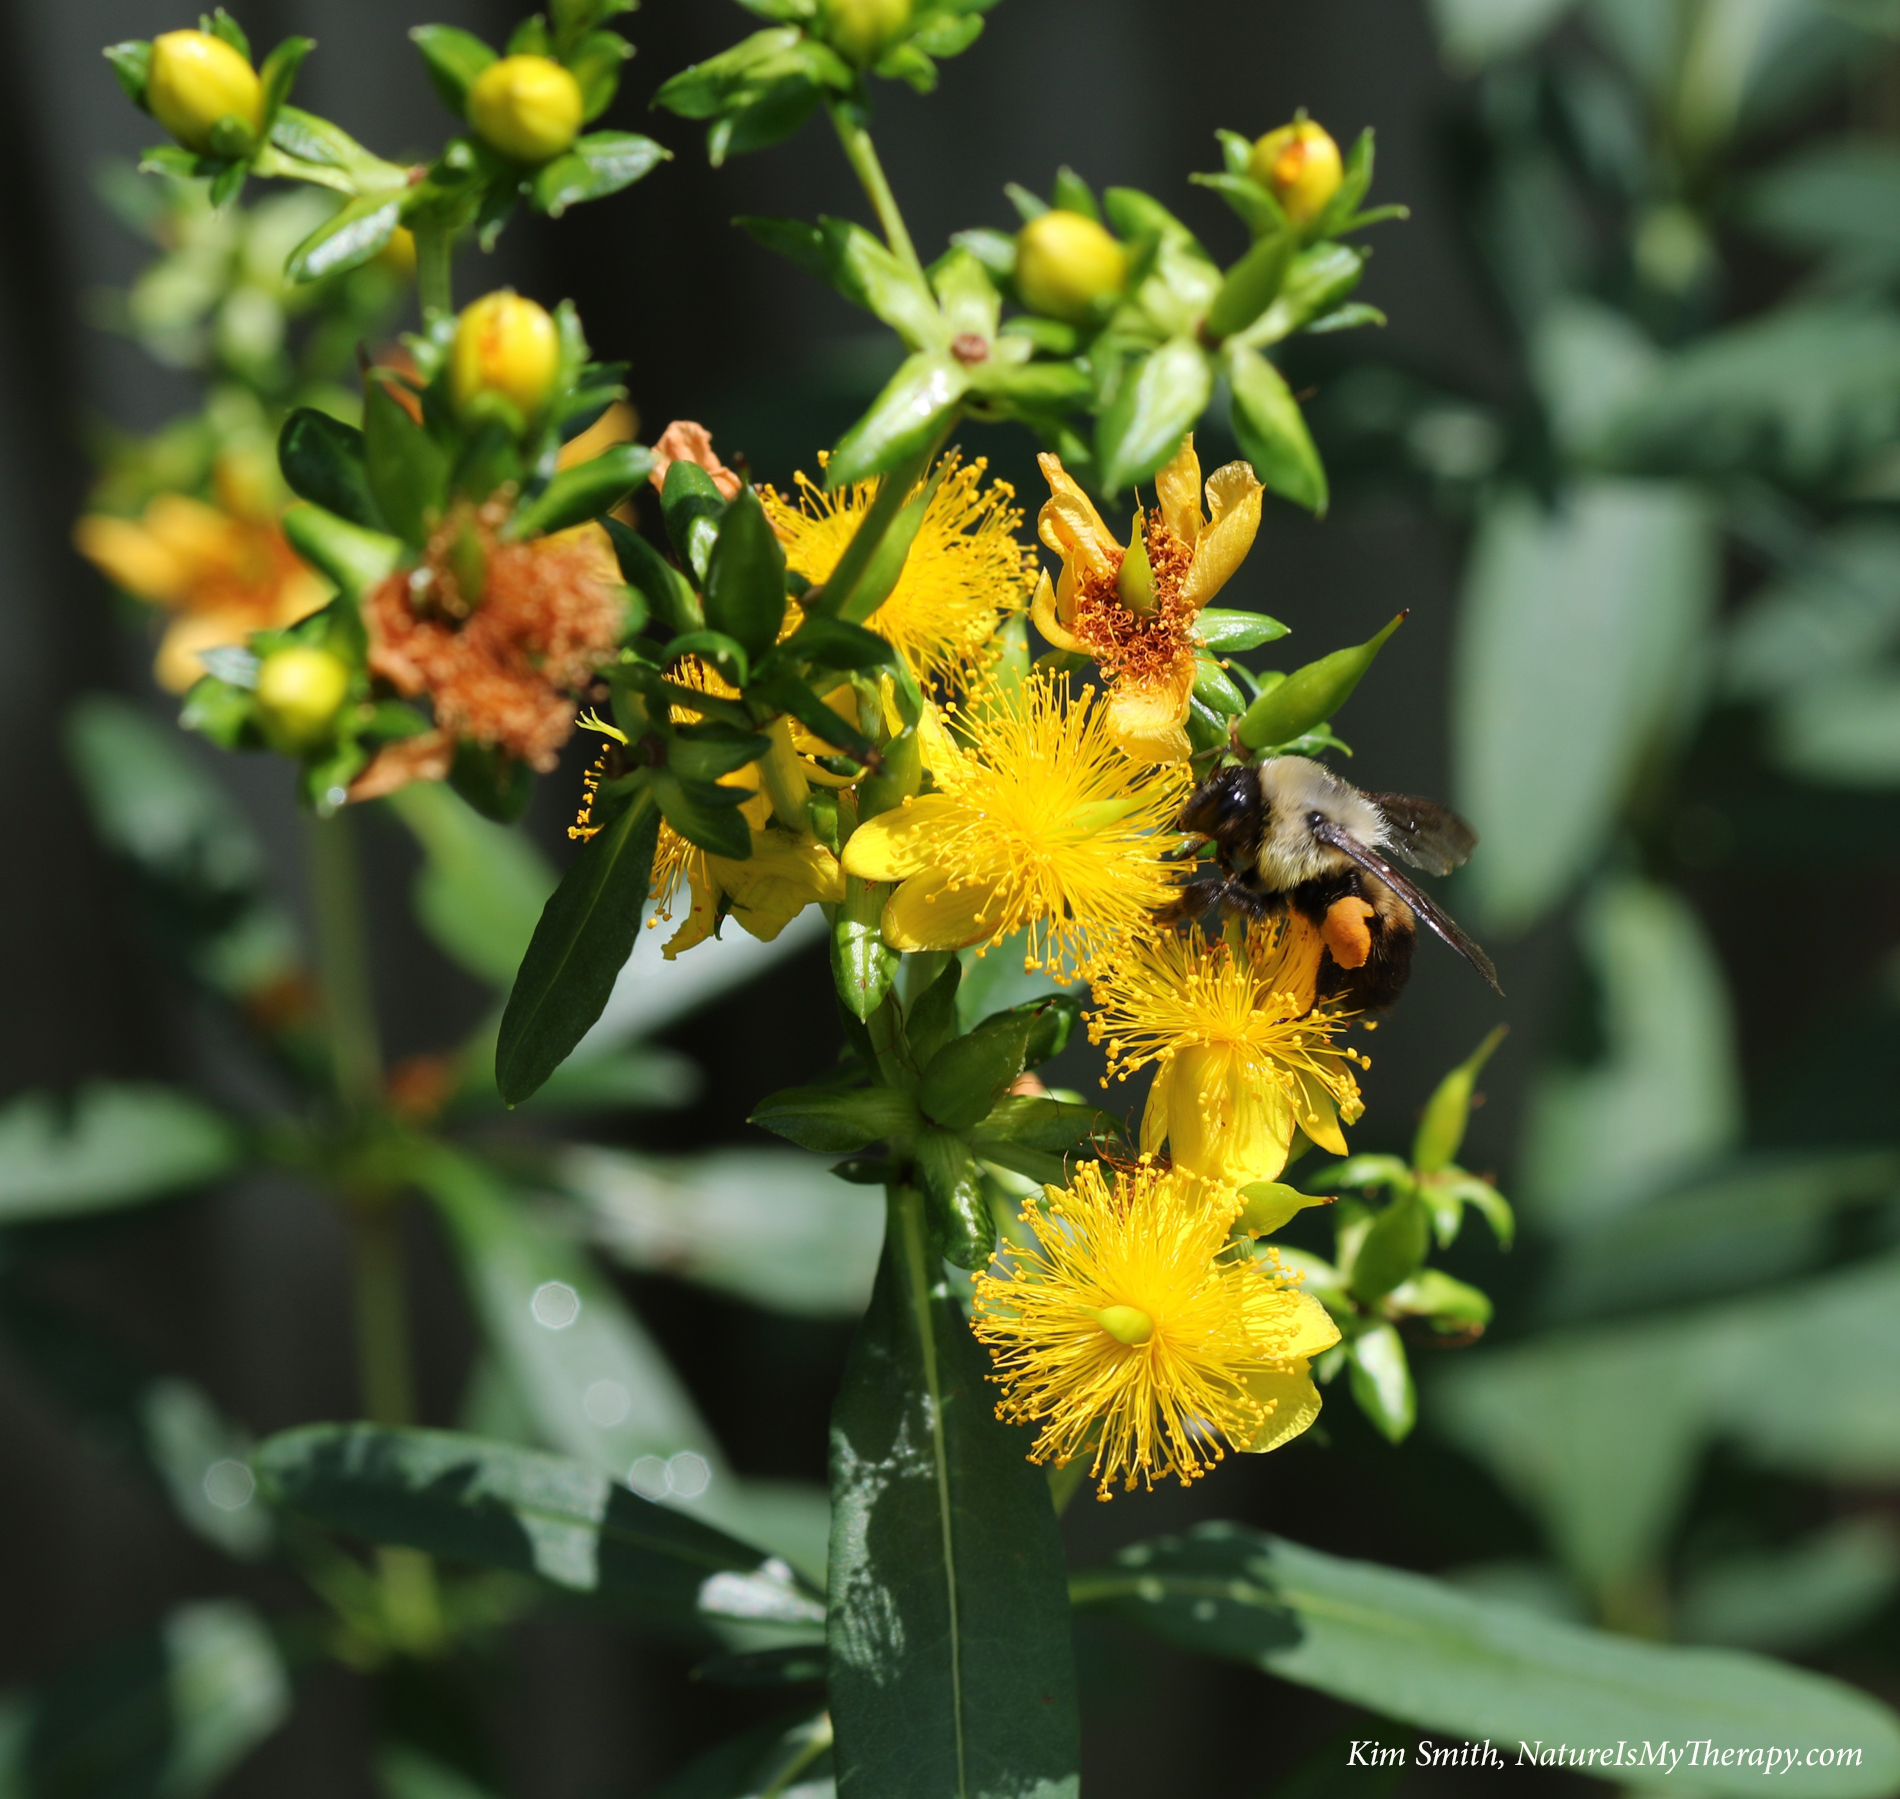 Shrubby st. john's wort with bumble bee